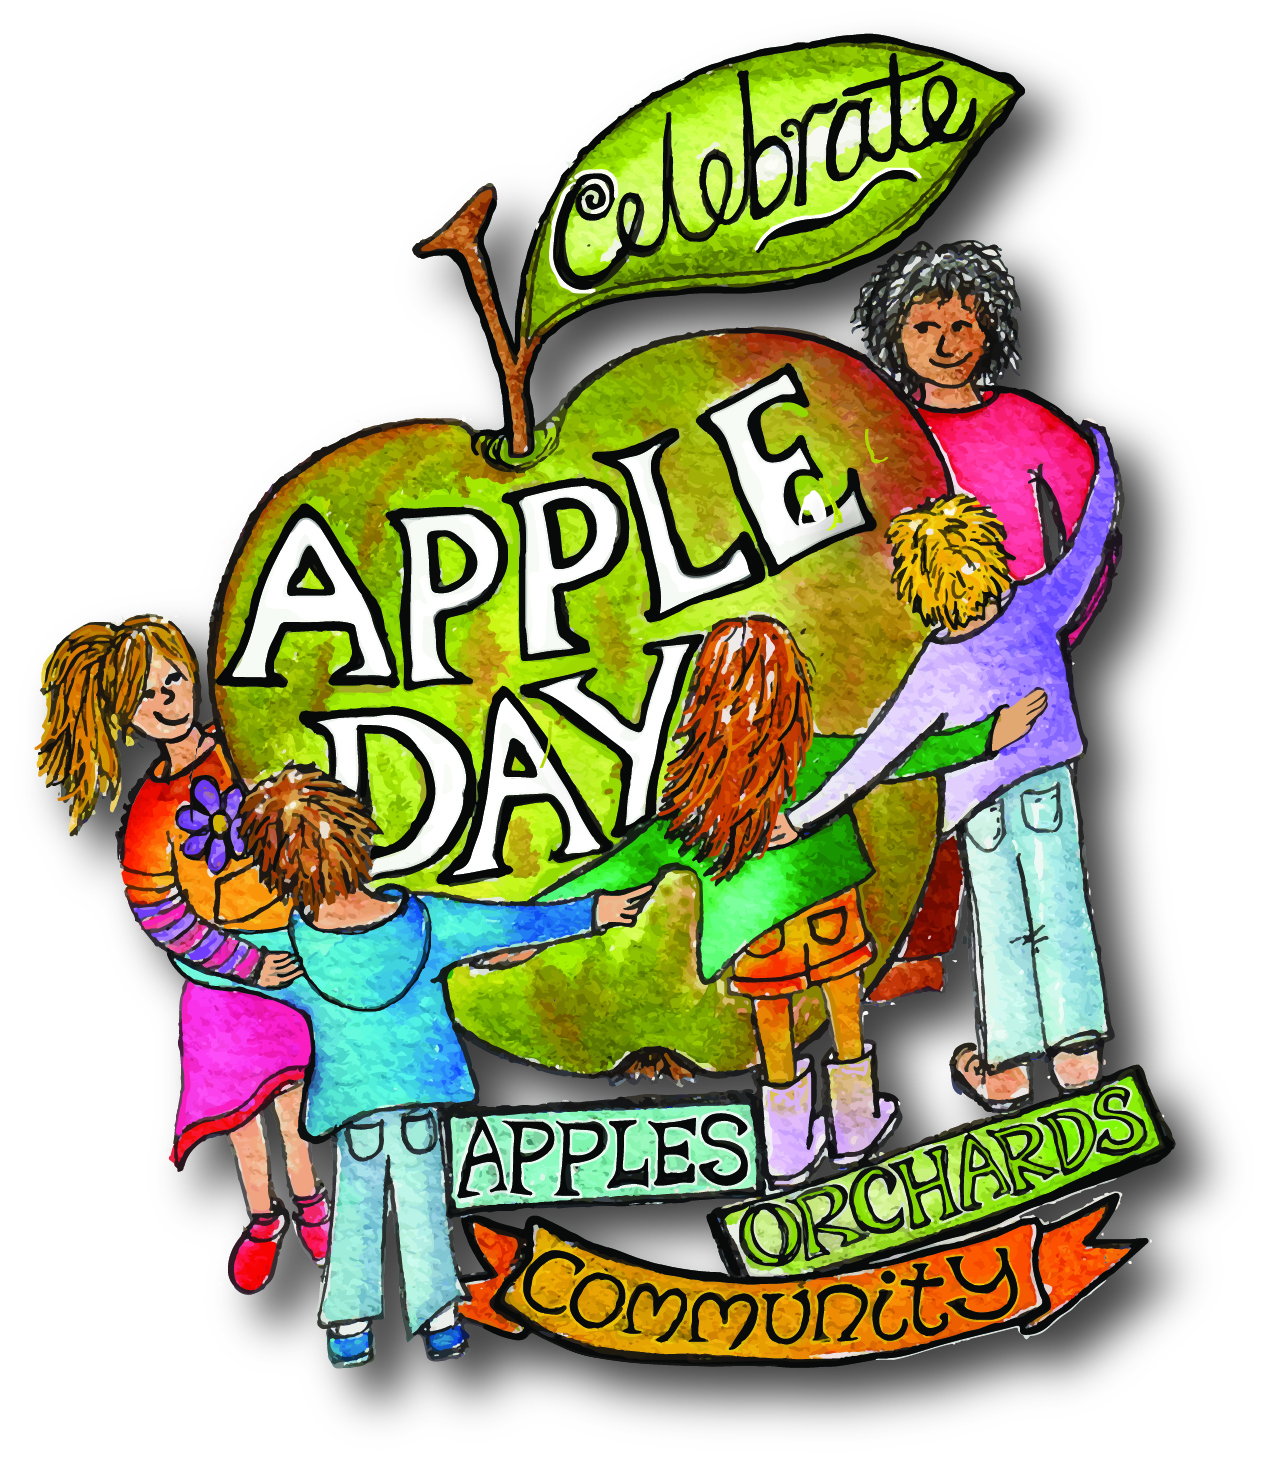 COMMUNITY: Apple Day is 15 years old!